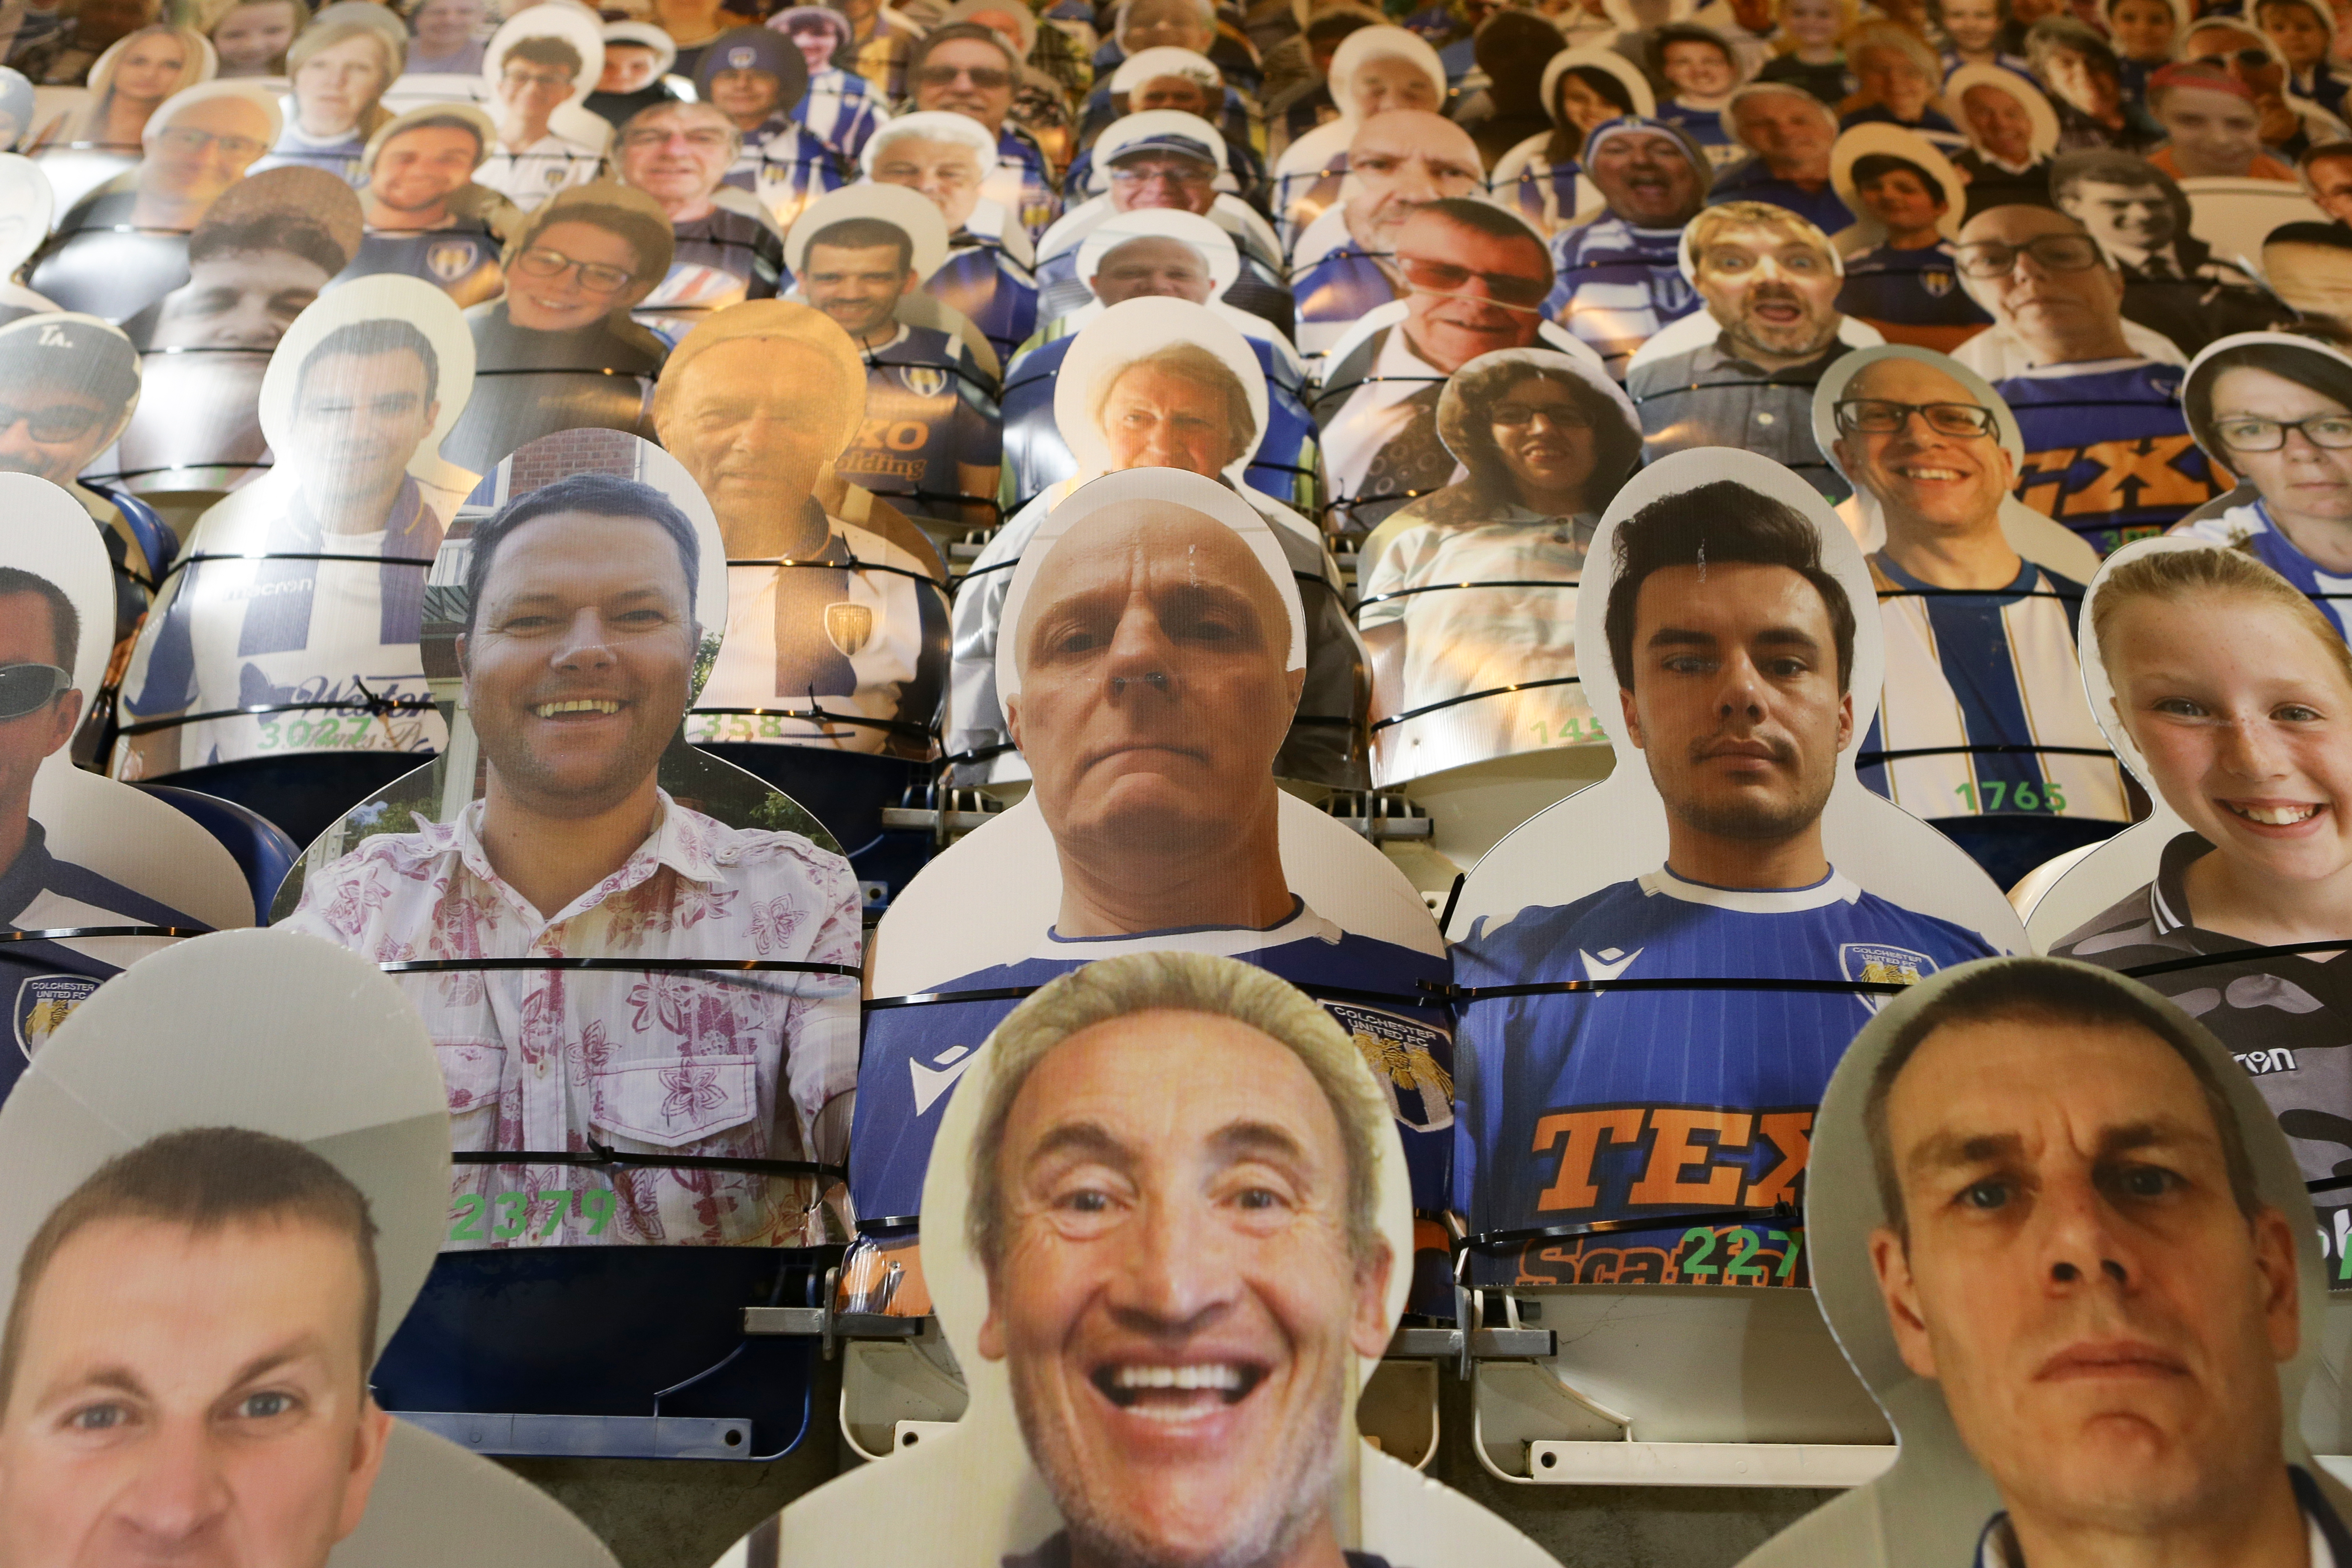 COLCHESTER, ENGLAND - DECEMBER 29: Cardboard cut outs of fans in the stands before the Sky Bet League Two match between Colchester United and Cheltenham Town at JobServe Community Stadium on December 29, 2020 in Colchester, England. (Photo by Jacques Feeney/Getty Images)